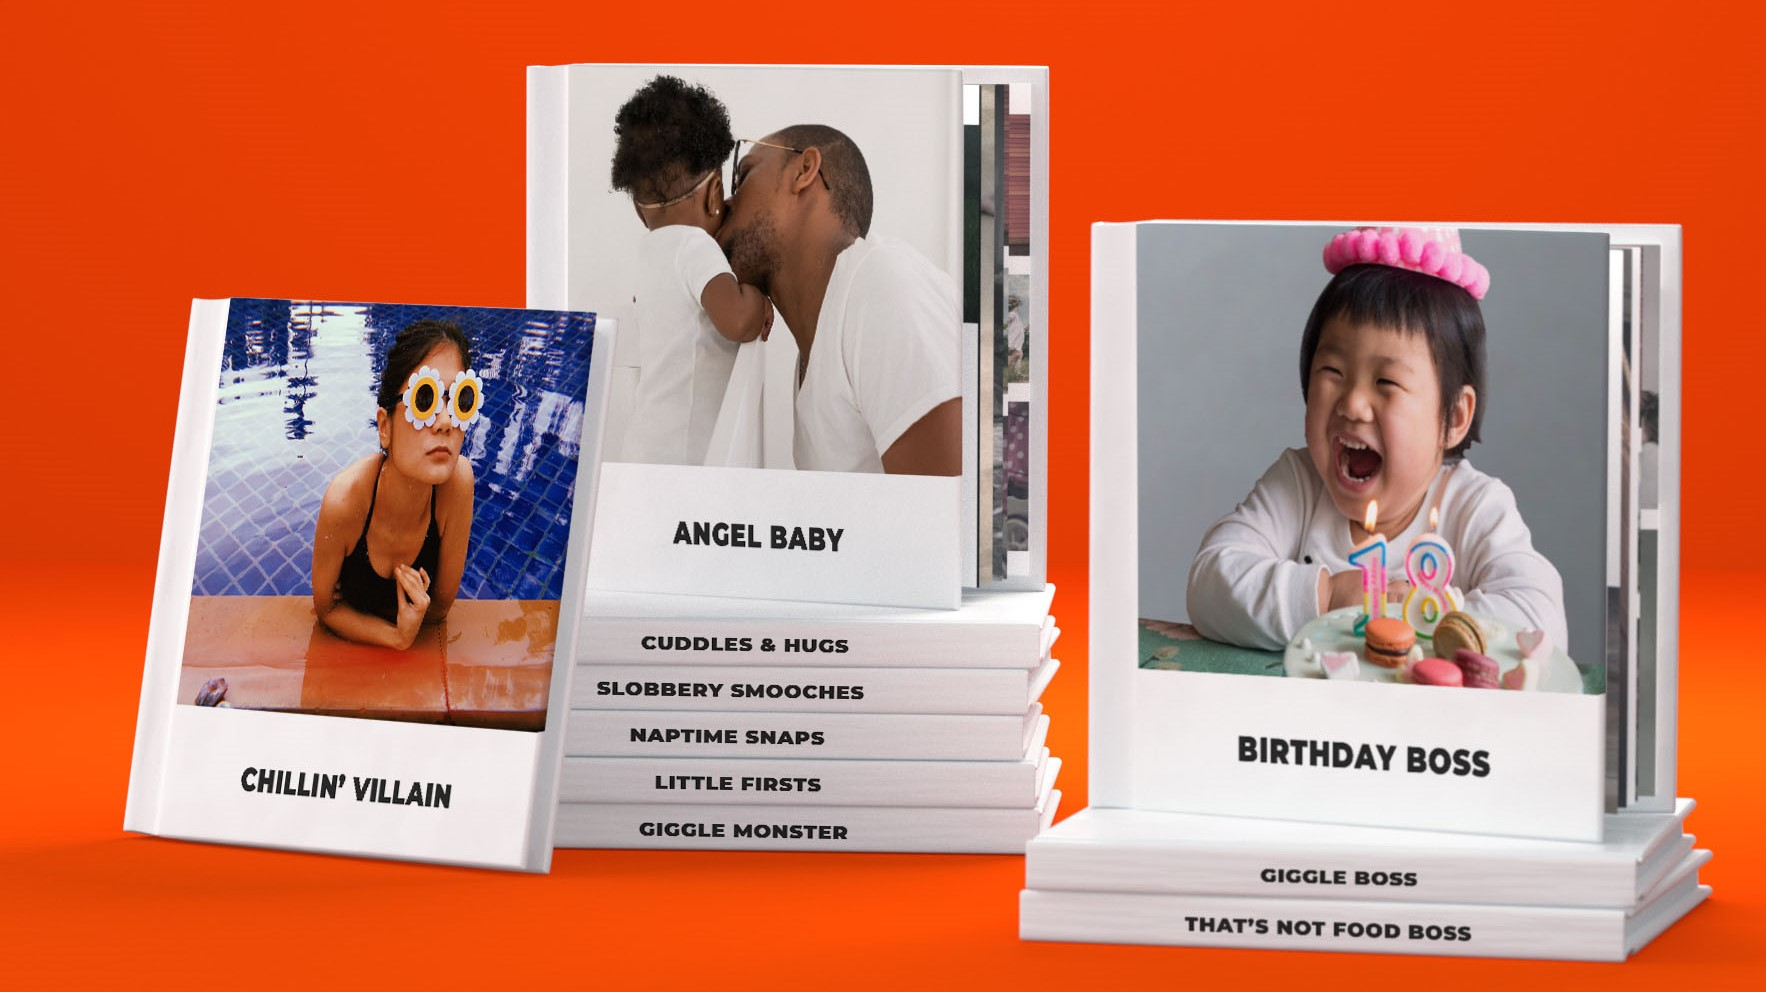 Instant books with different titles on an orange background